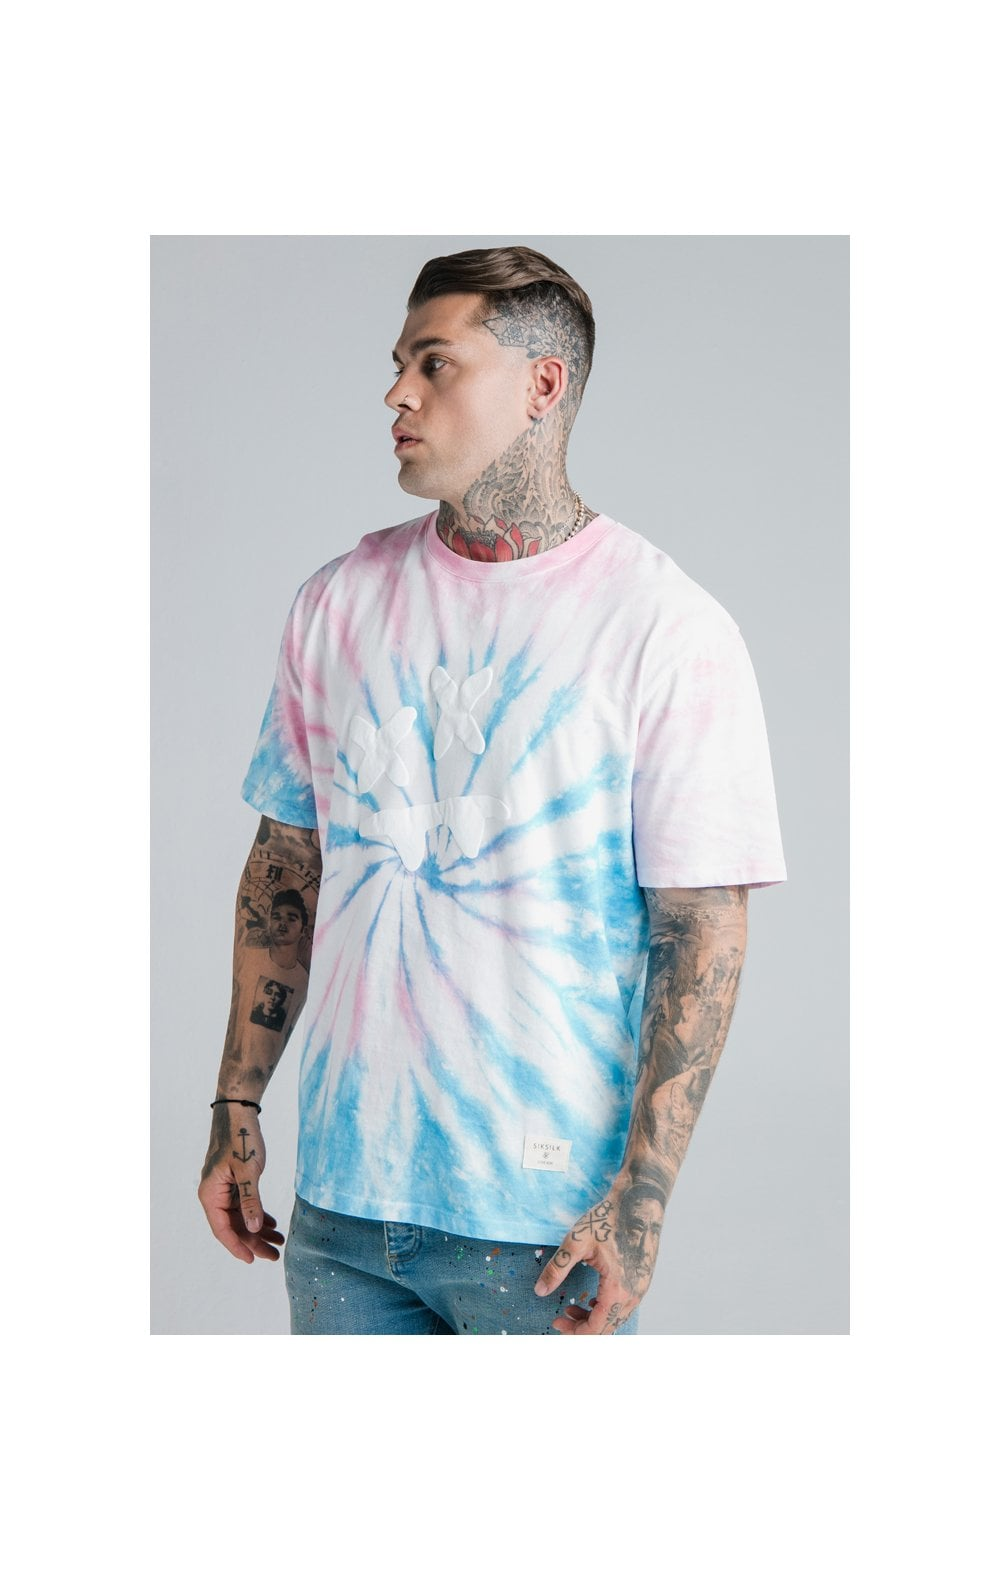 Load image into Gallery viewer, SikSilk X Steve Aoki S/S Oversize Essential Tee – Baby Pink & Blue Tie Dye (2)